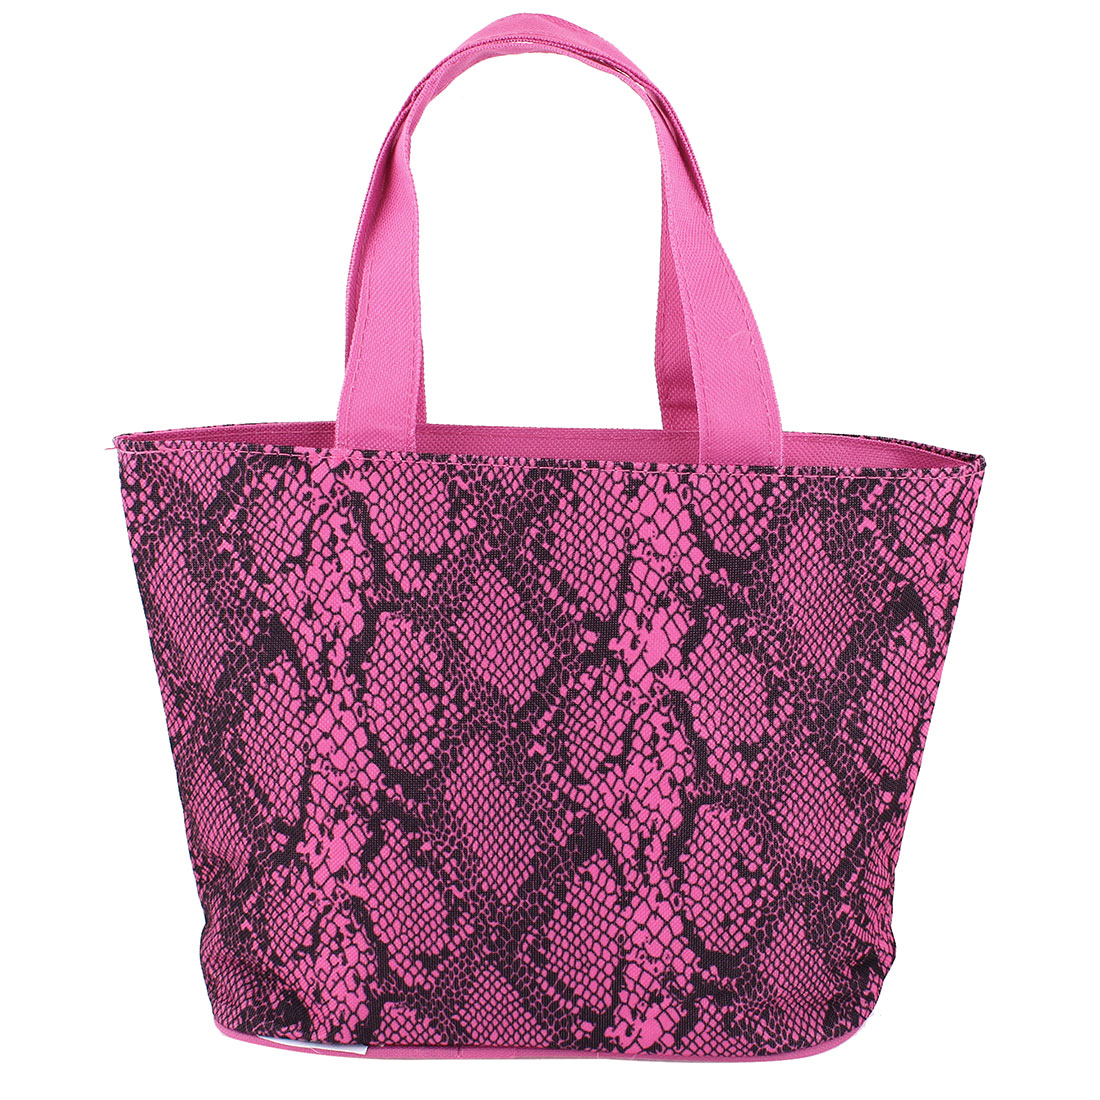 Portable Zipper Fuchsia Black Snake Printed Nylon Shopping Tote Handbag Bag